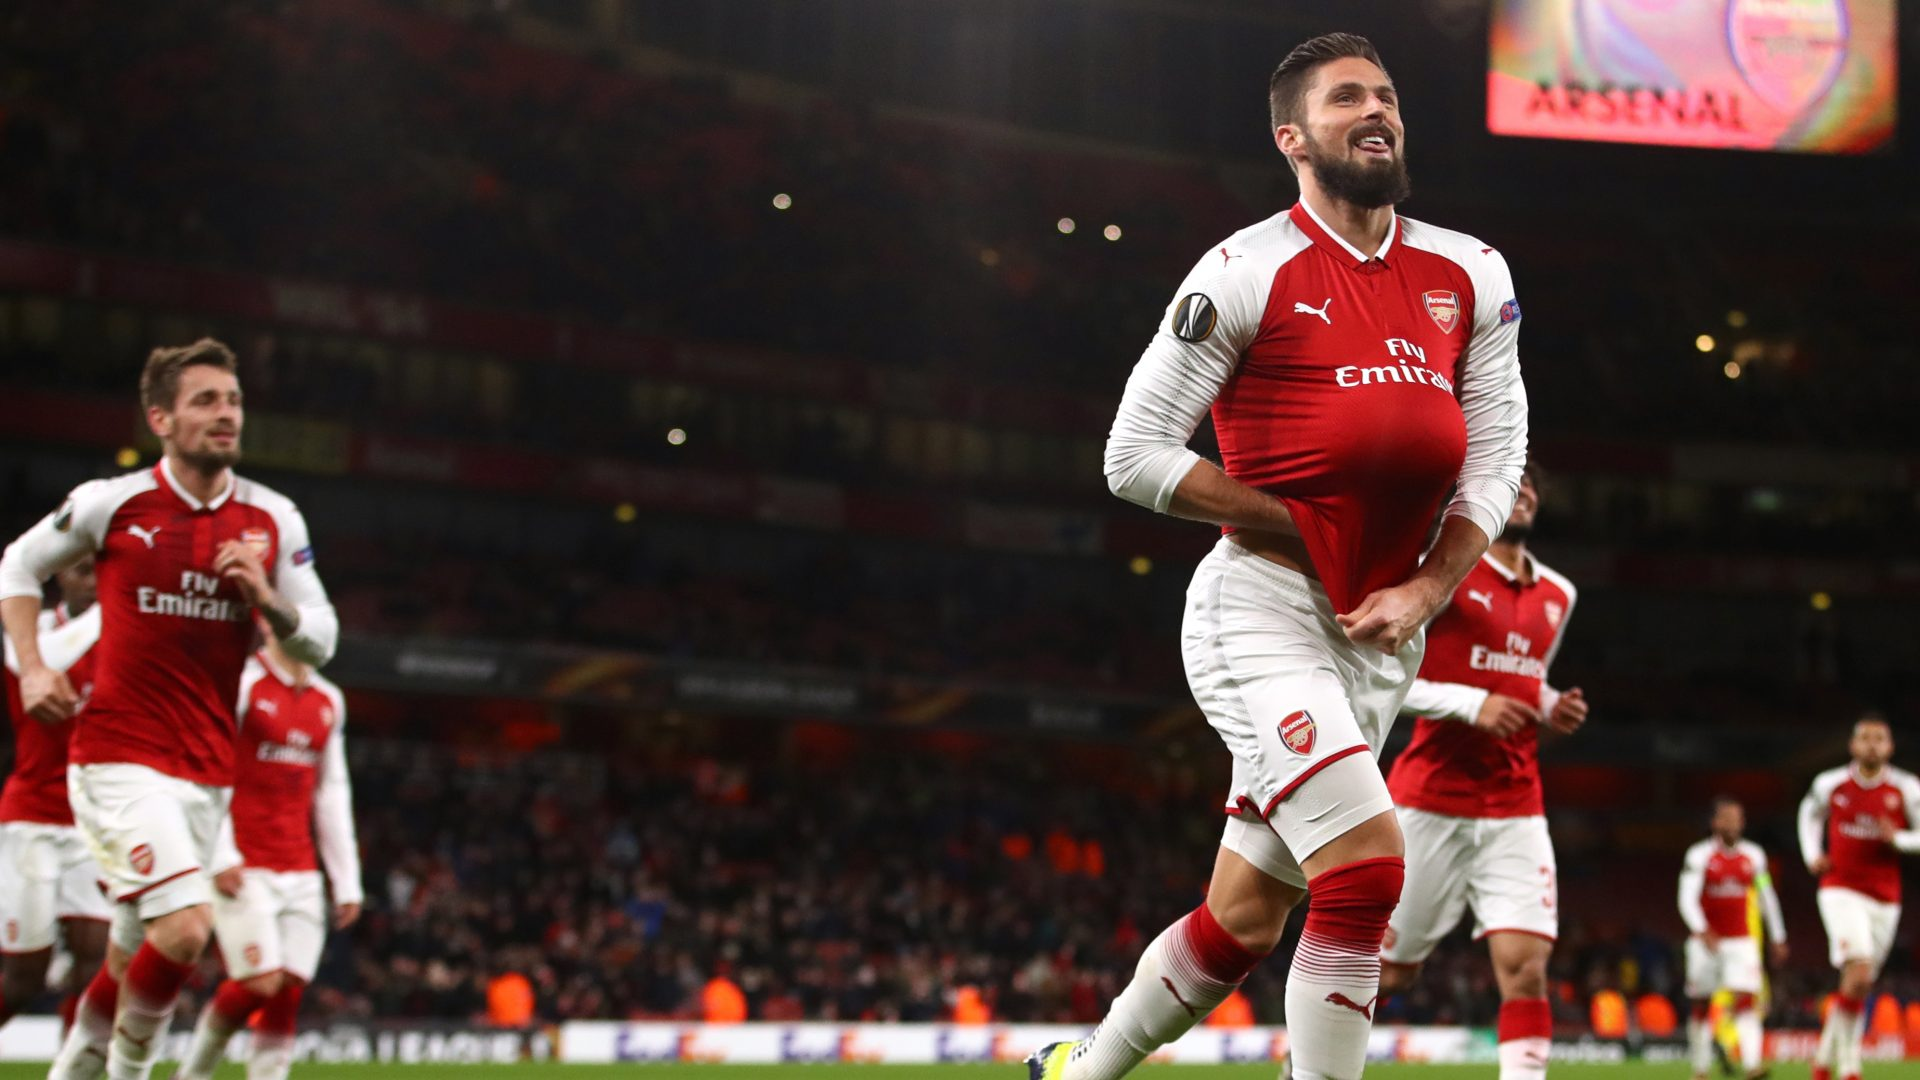 Olivier Giroud was among Arsenal's scorers as they won in the Europa League